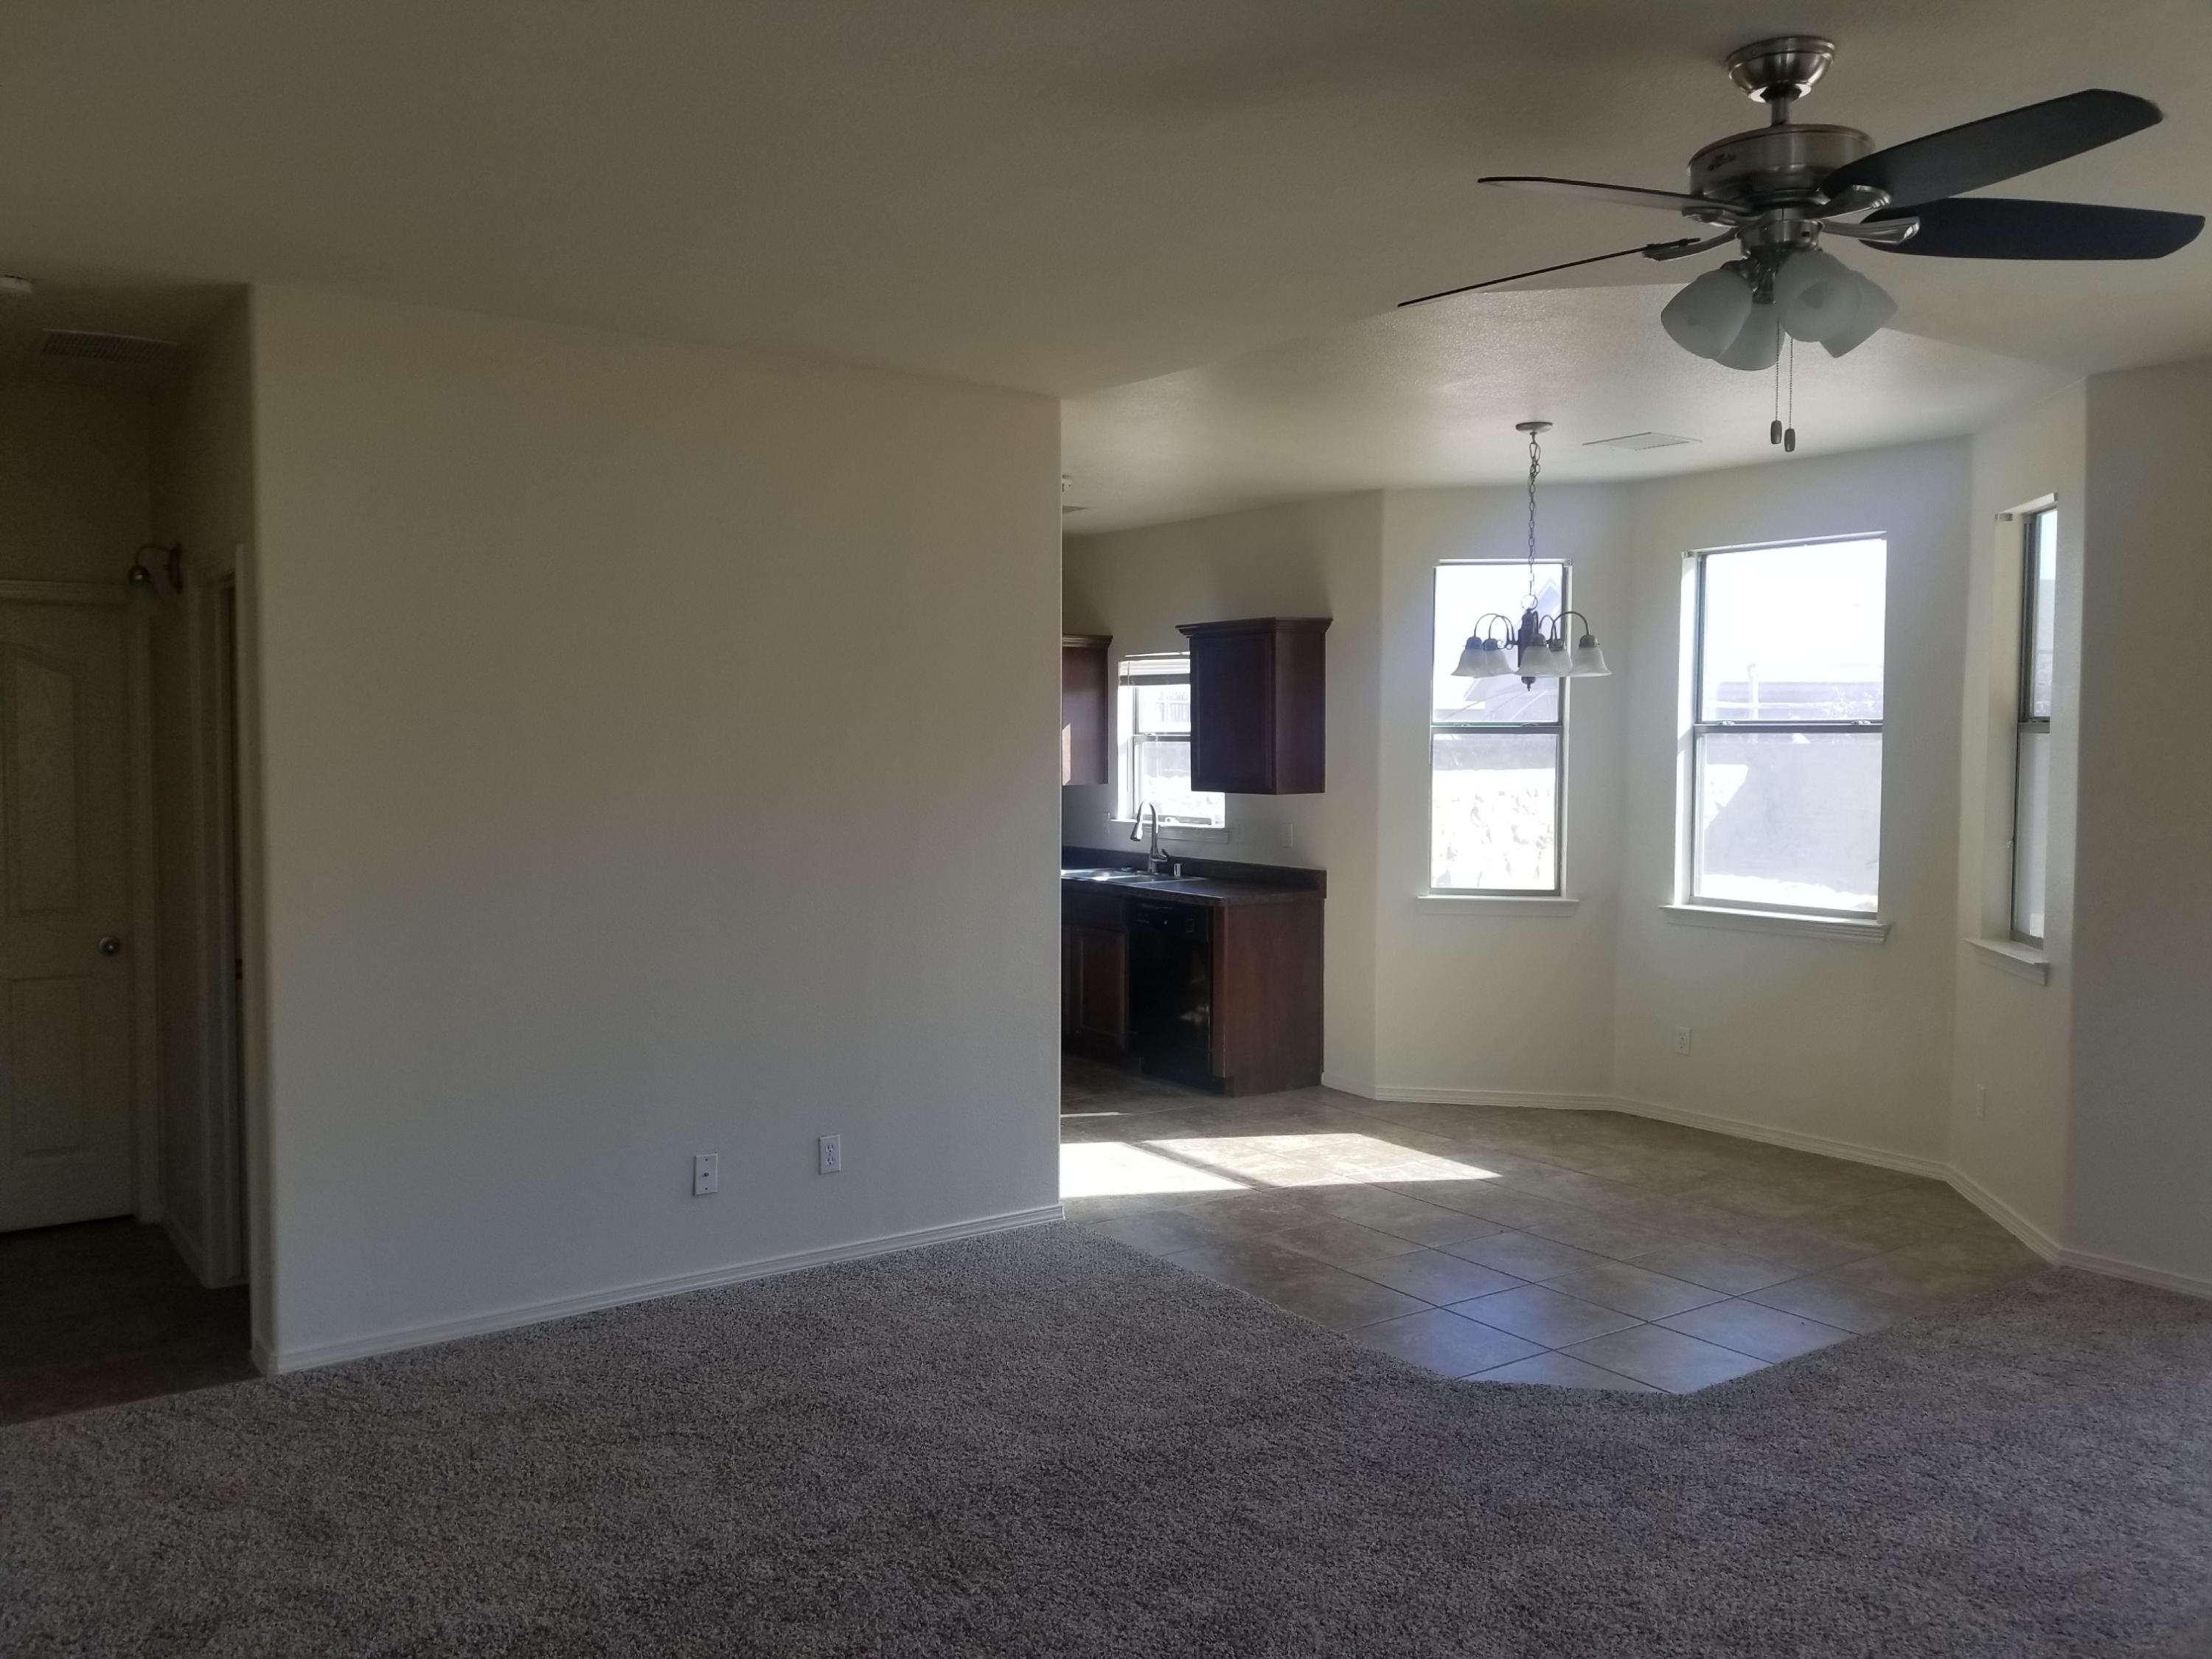 14272 RATTLER POINT, El Paso, Texas 79938, 3 Bedrooms Bedrooms, ,3 BathroomsBathrooms,Residential,For sale,RATTLER POINT,839516